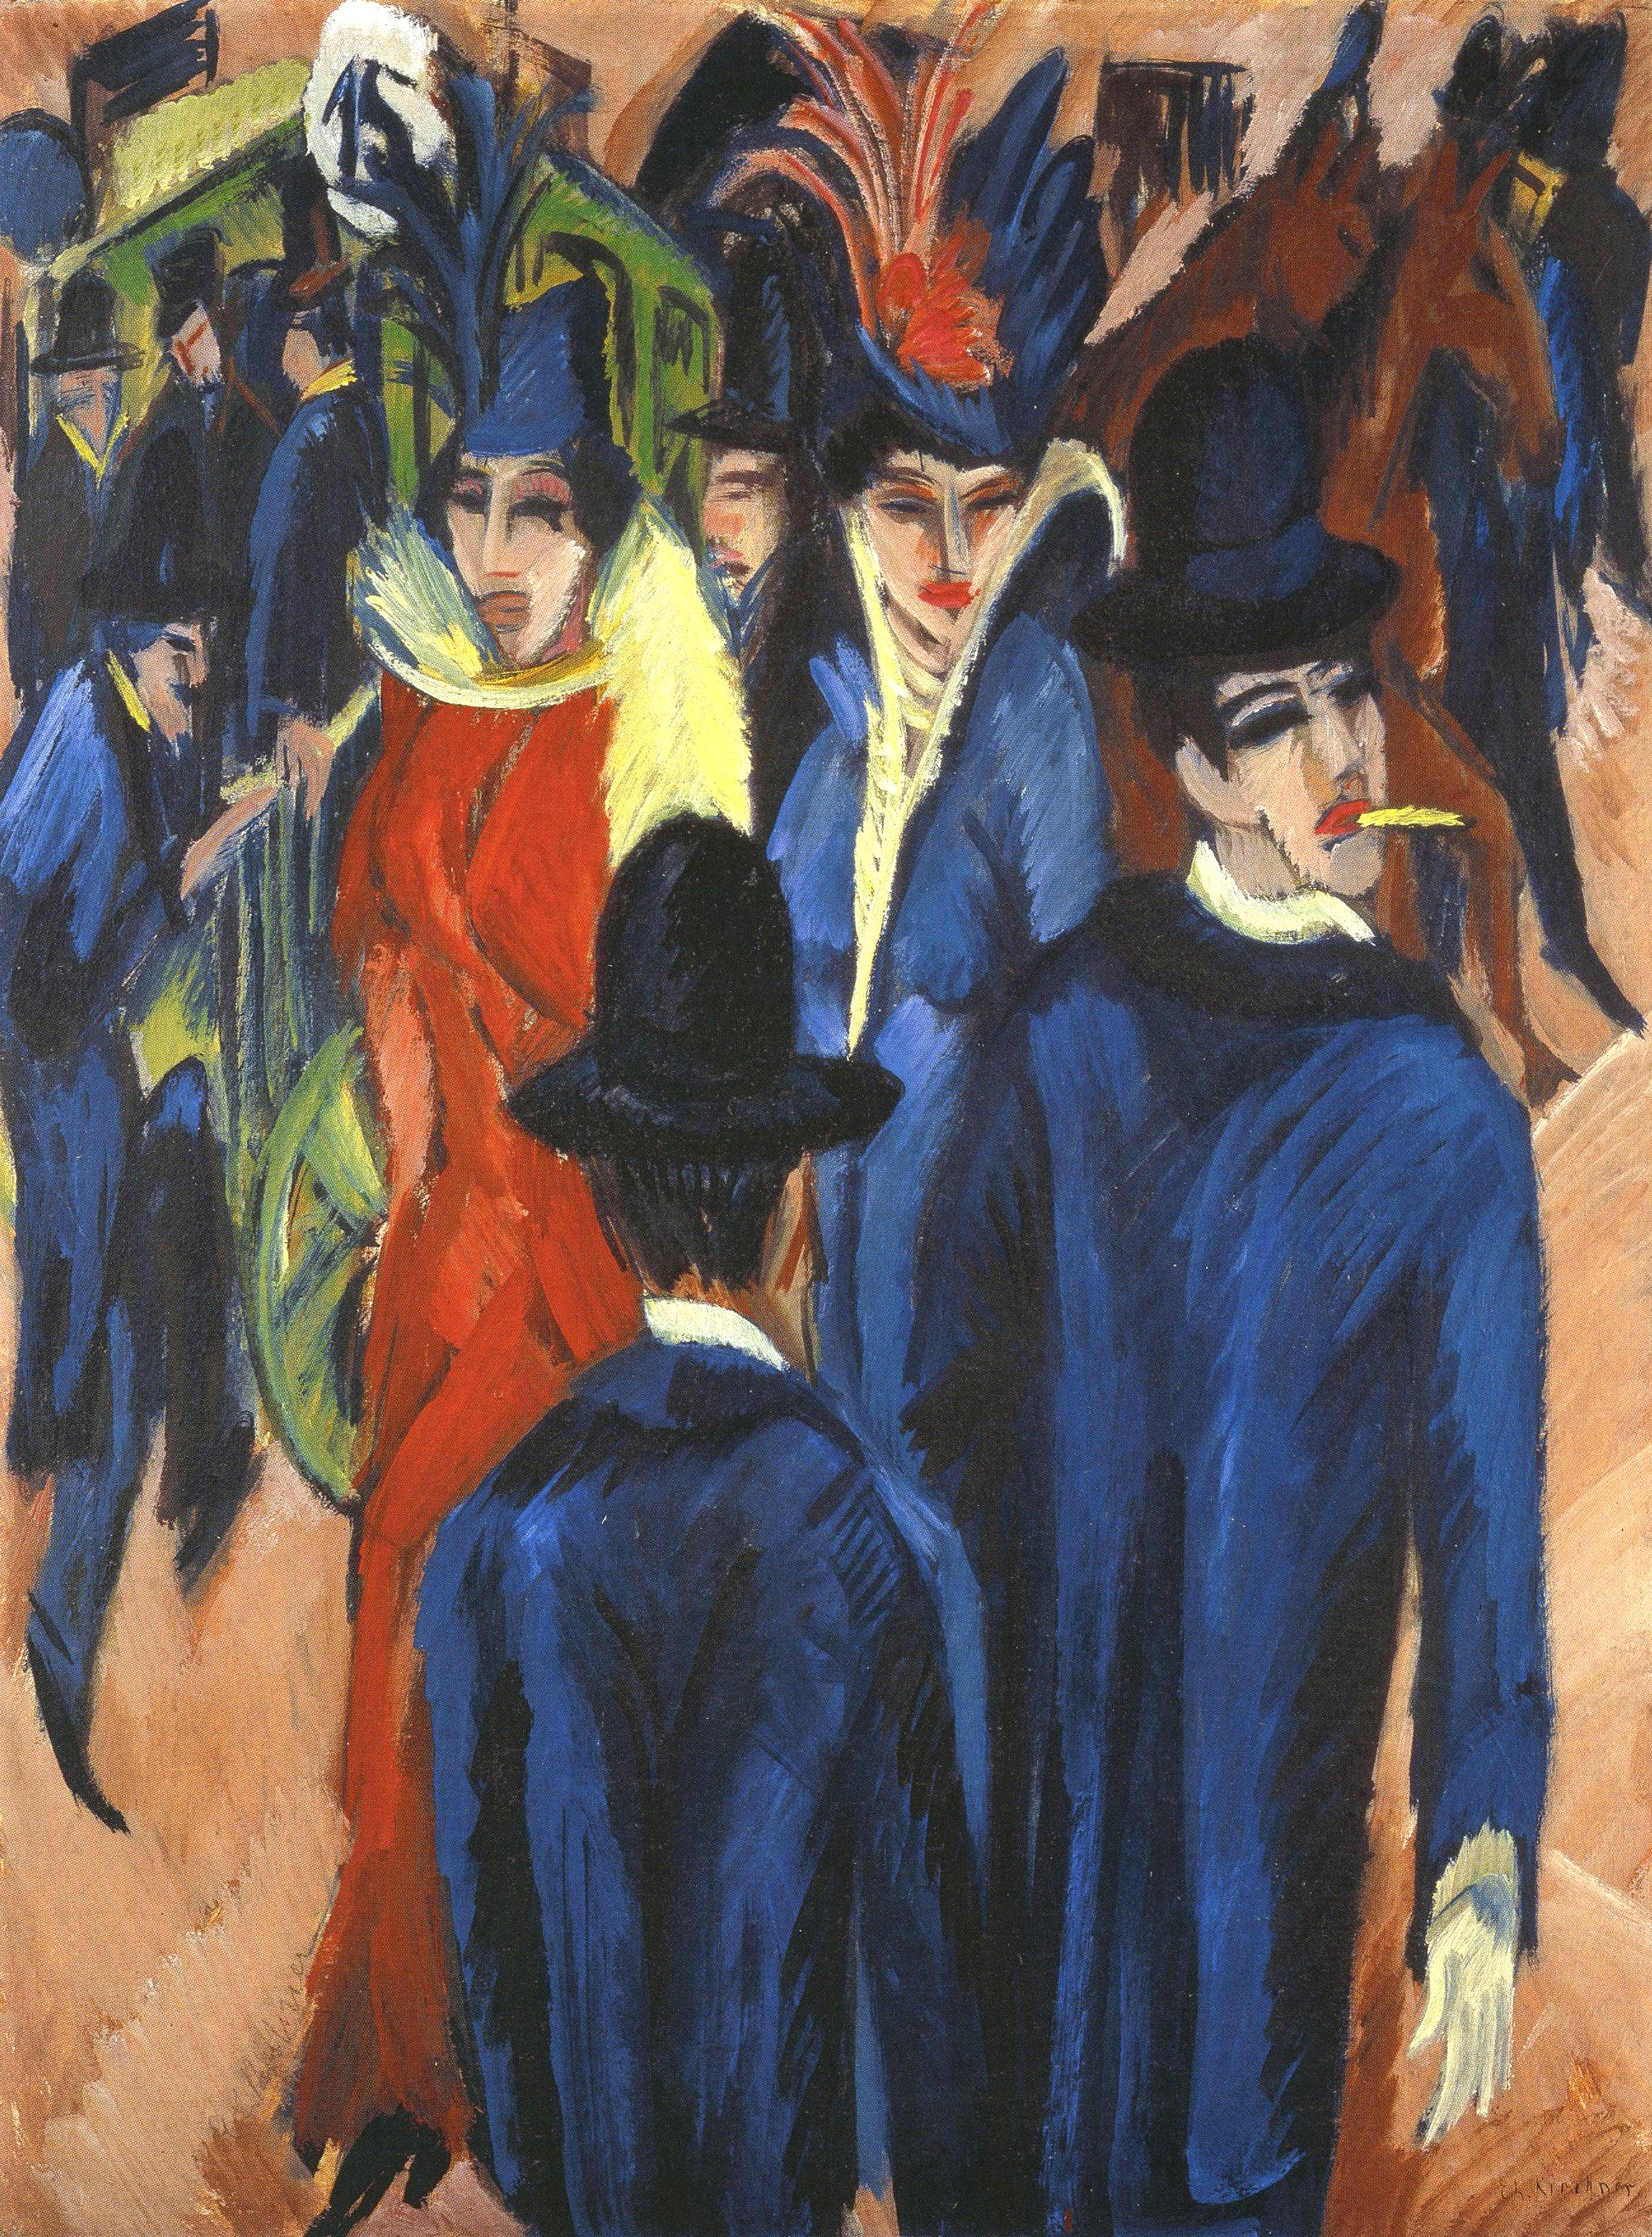 https://upload.wikimedia.org/wikipedia/commons/d/d1/Kirchner_Berlin_Street_Scene_1913.jpg